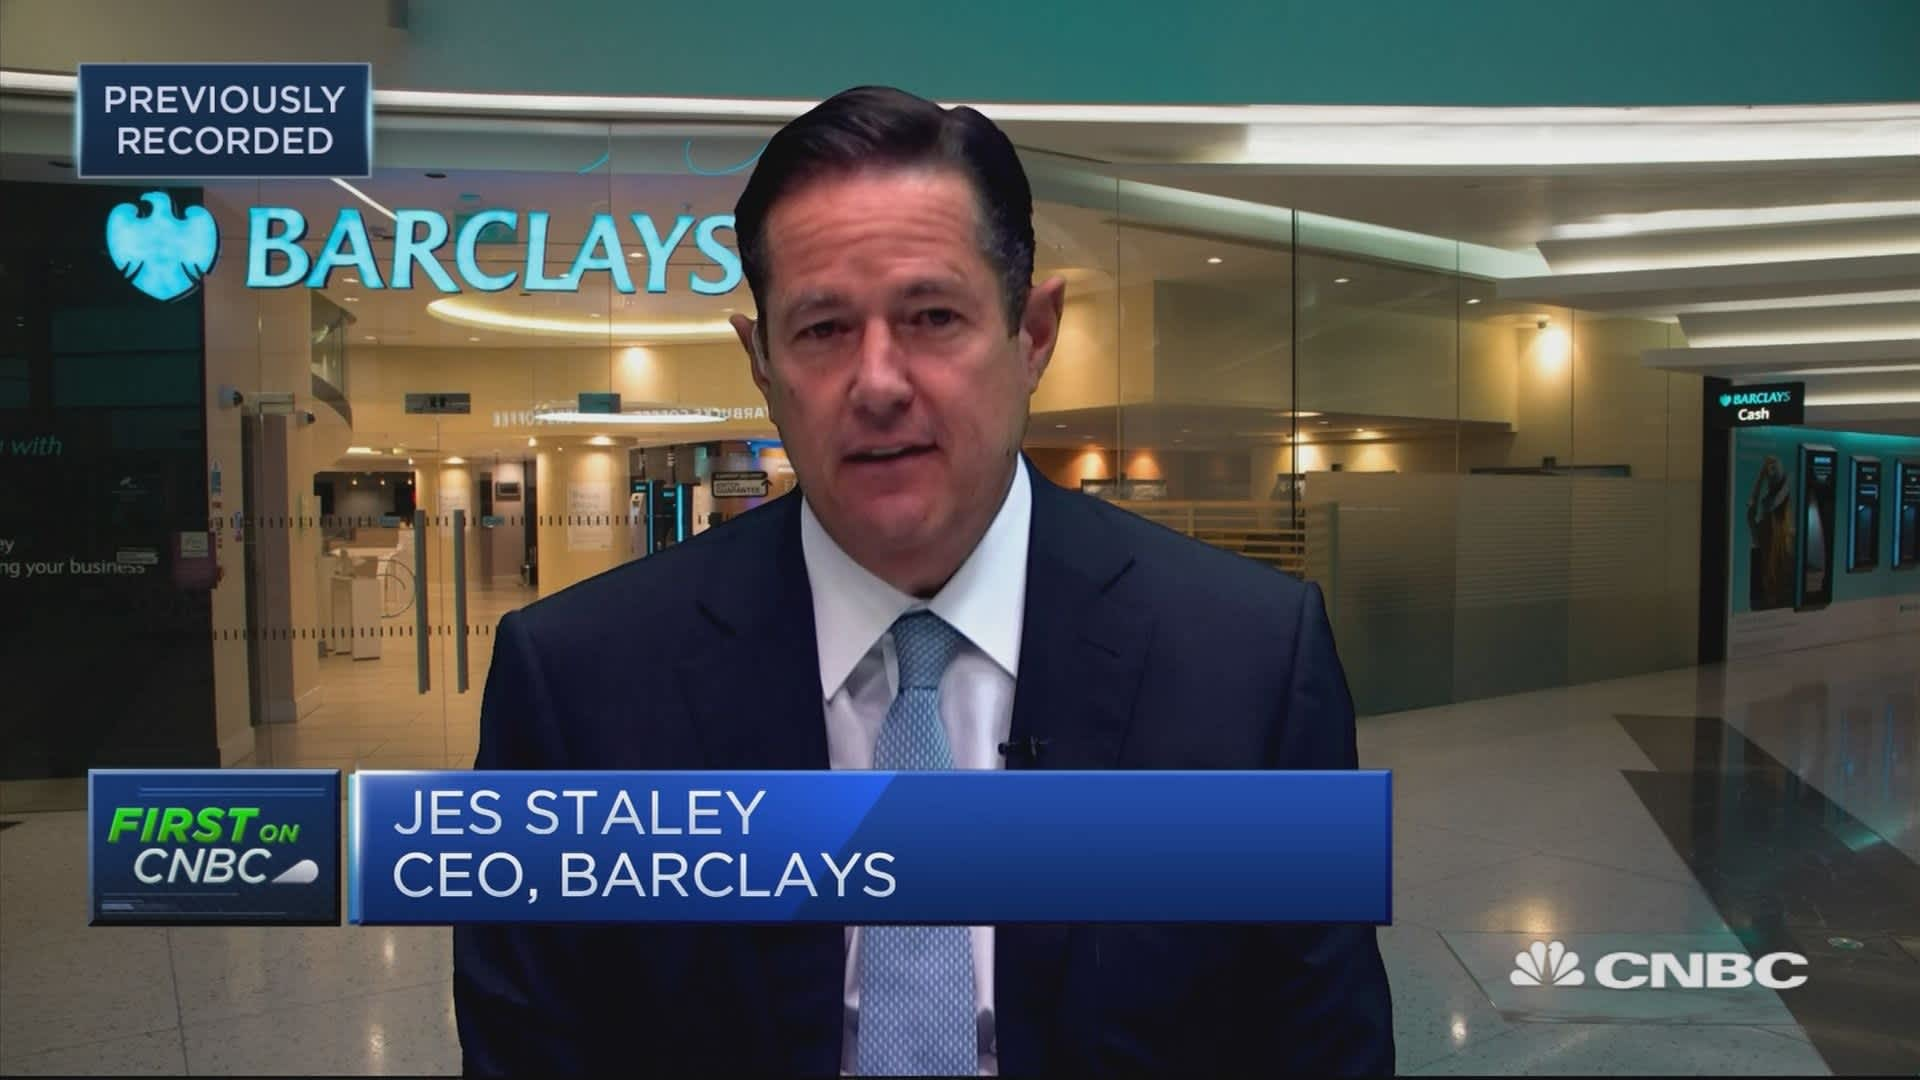 Barclays CEO: Focused on bringing return on tangible equity to double digits